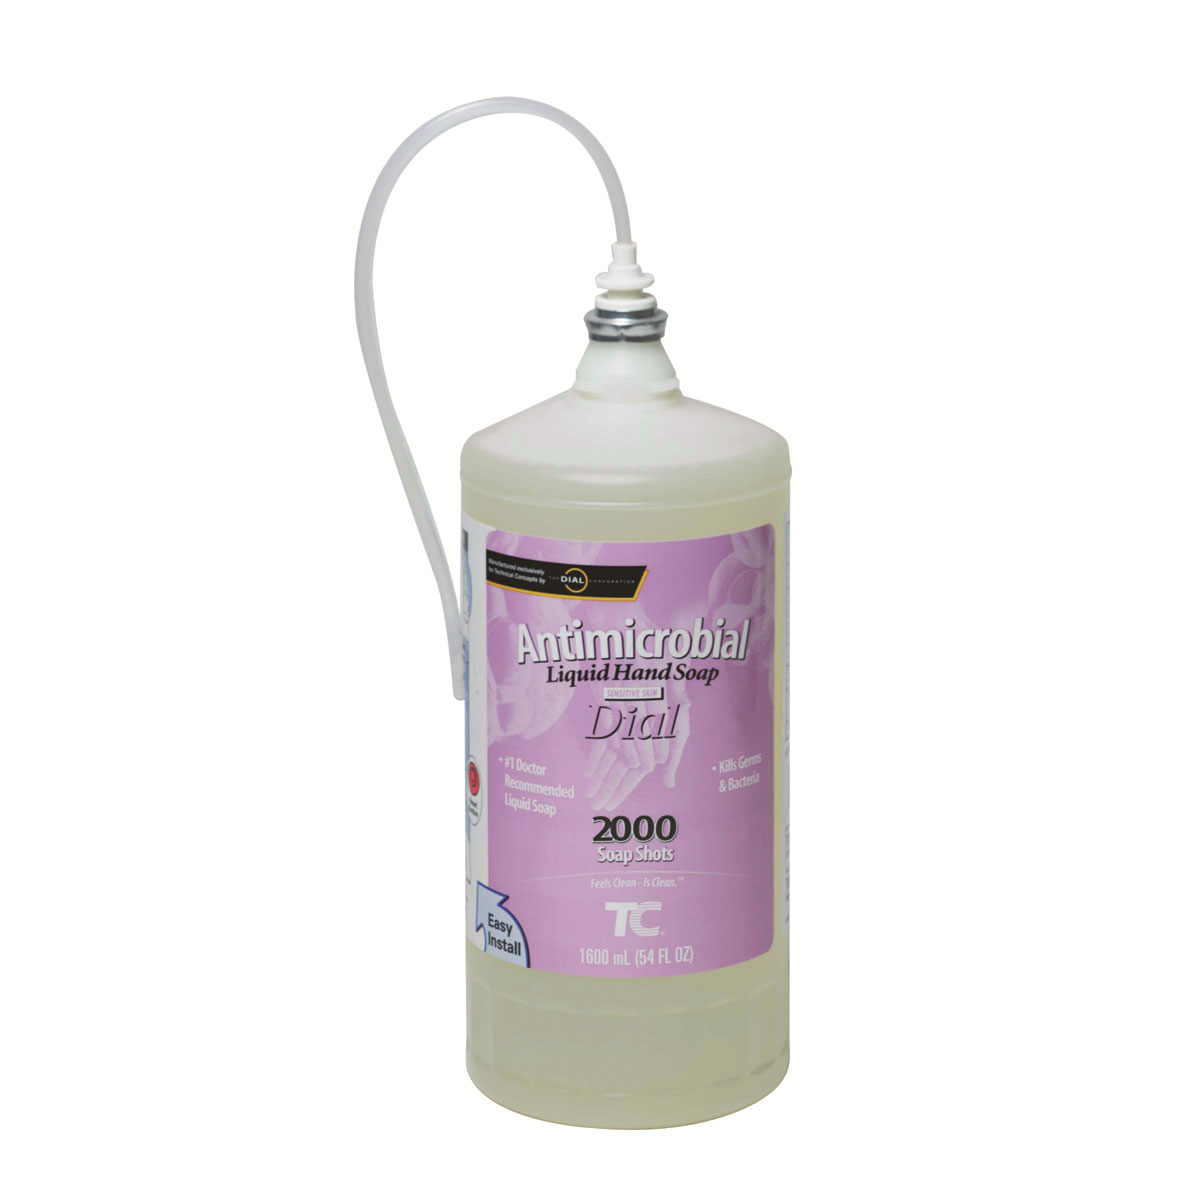 Oneshot Antimicrobial Lotion Soap Refill 4 800ml